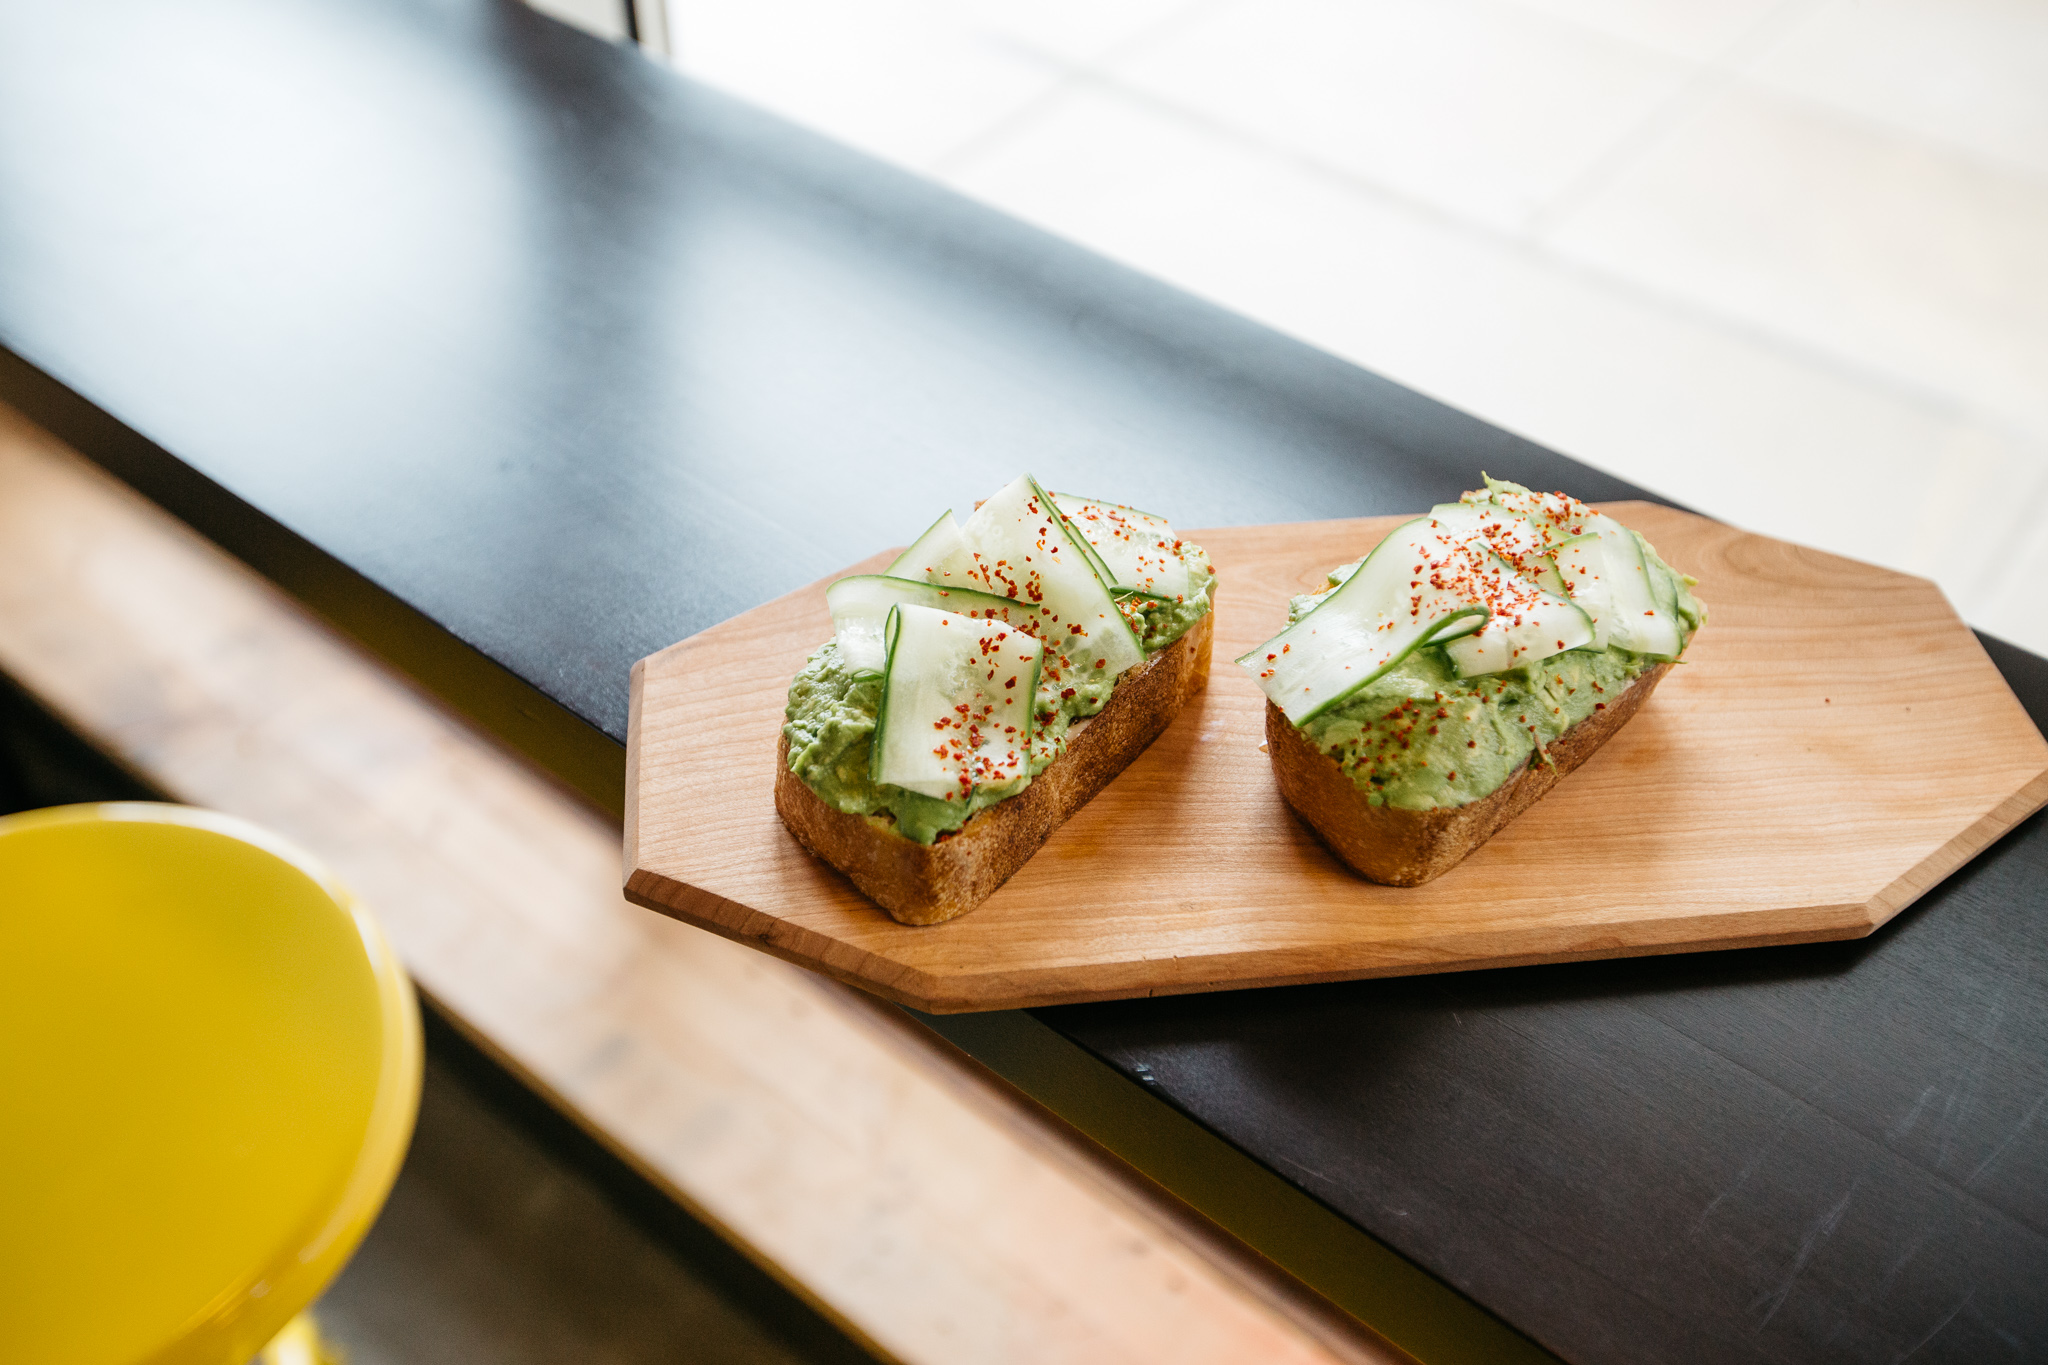 Two slices of avocado toast with cucumber and a sprinkle of red spice sit on a wooden board in a window.